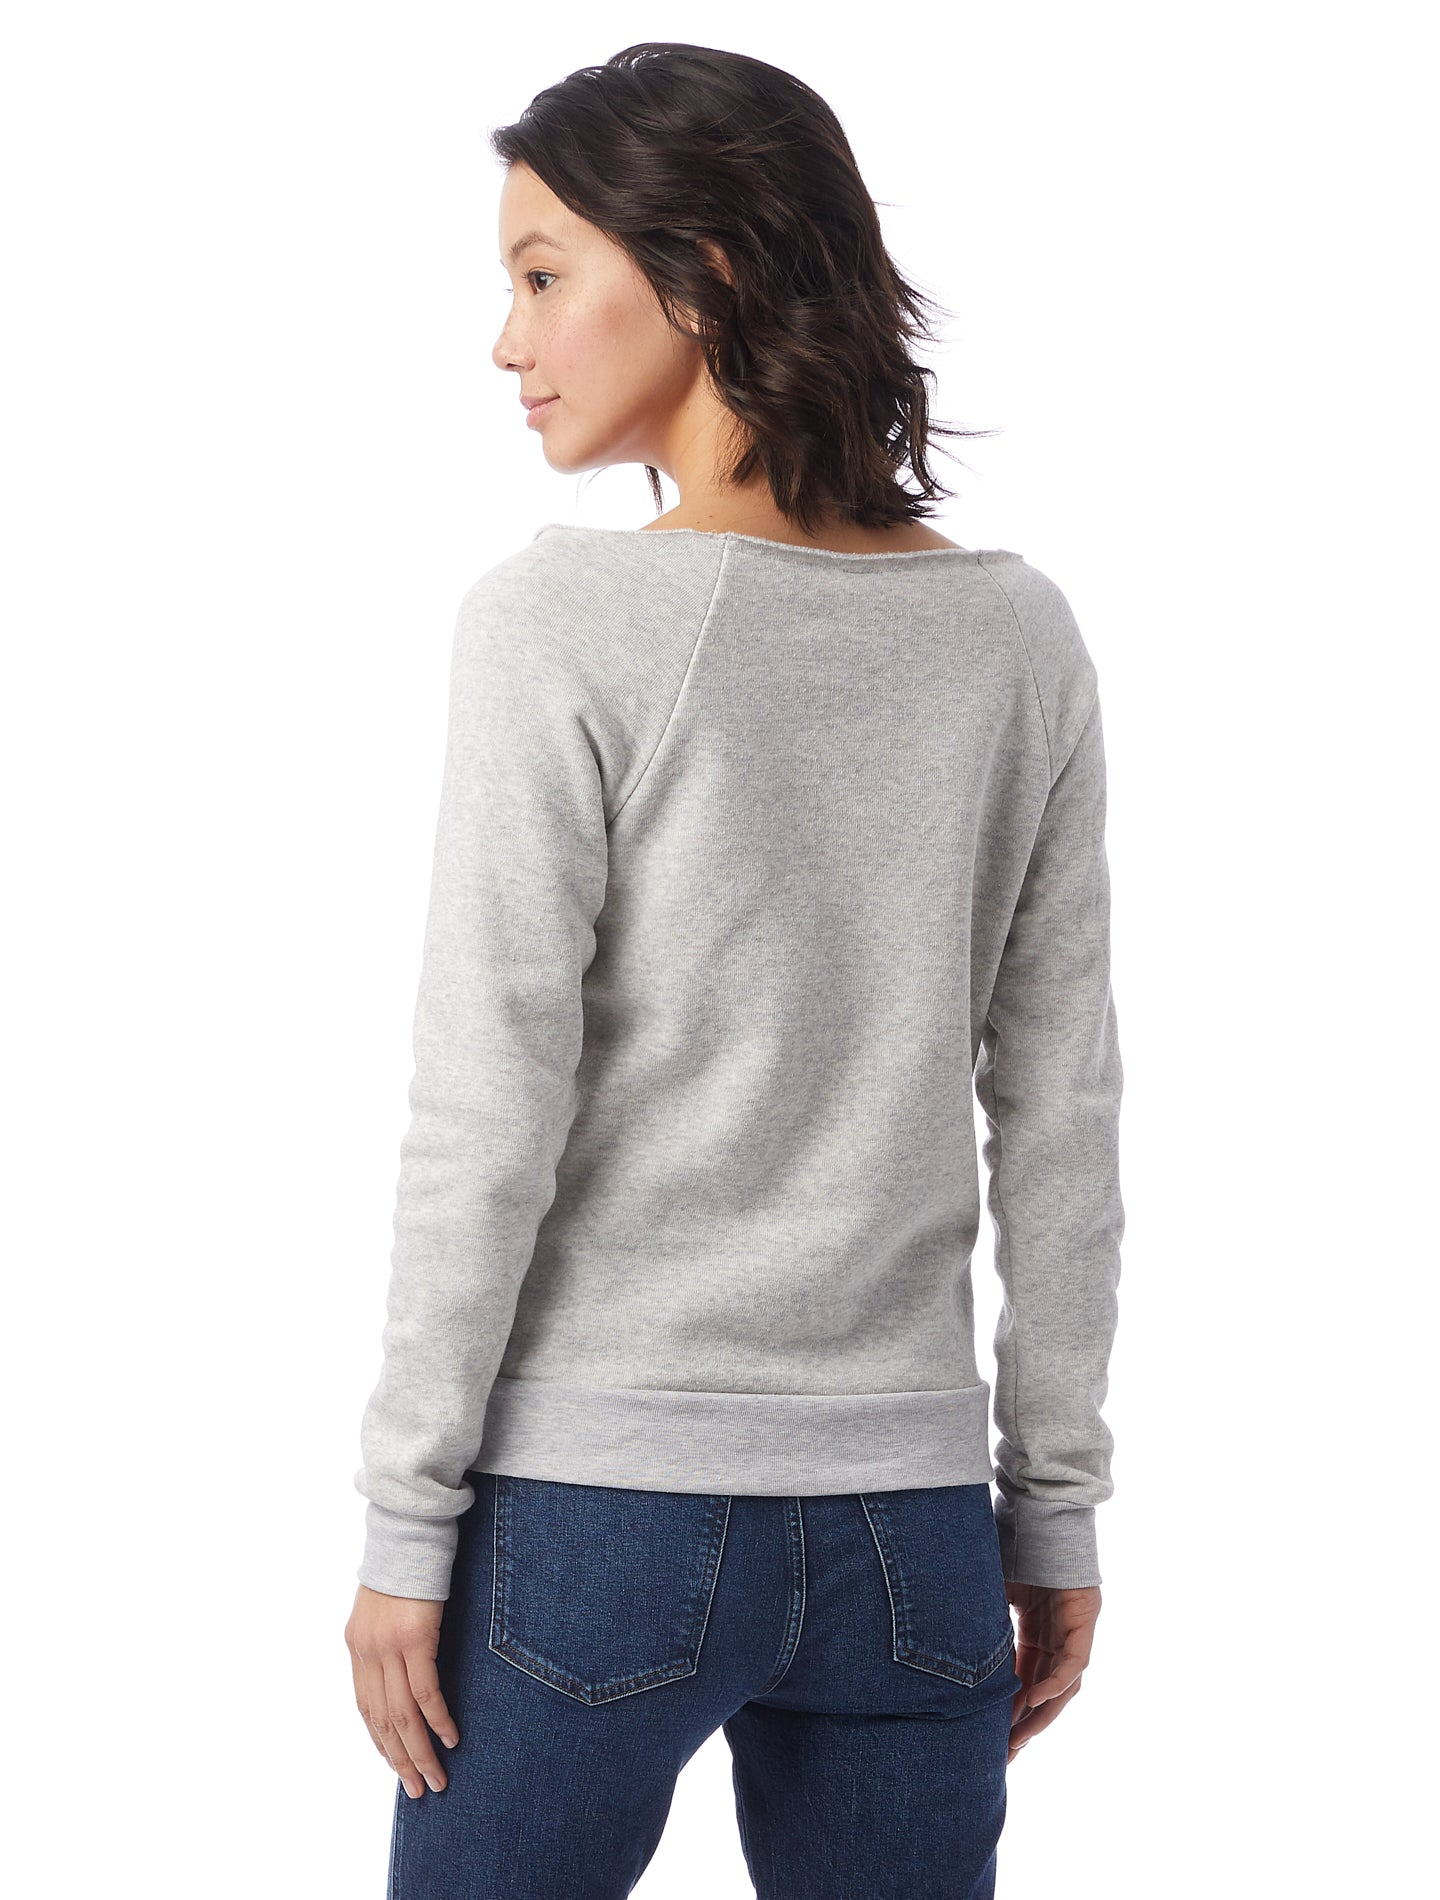 HOPE > Cancer Womens Triblend Slouchy Sweatshirt